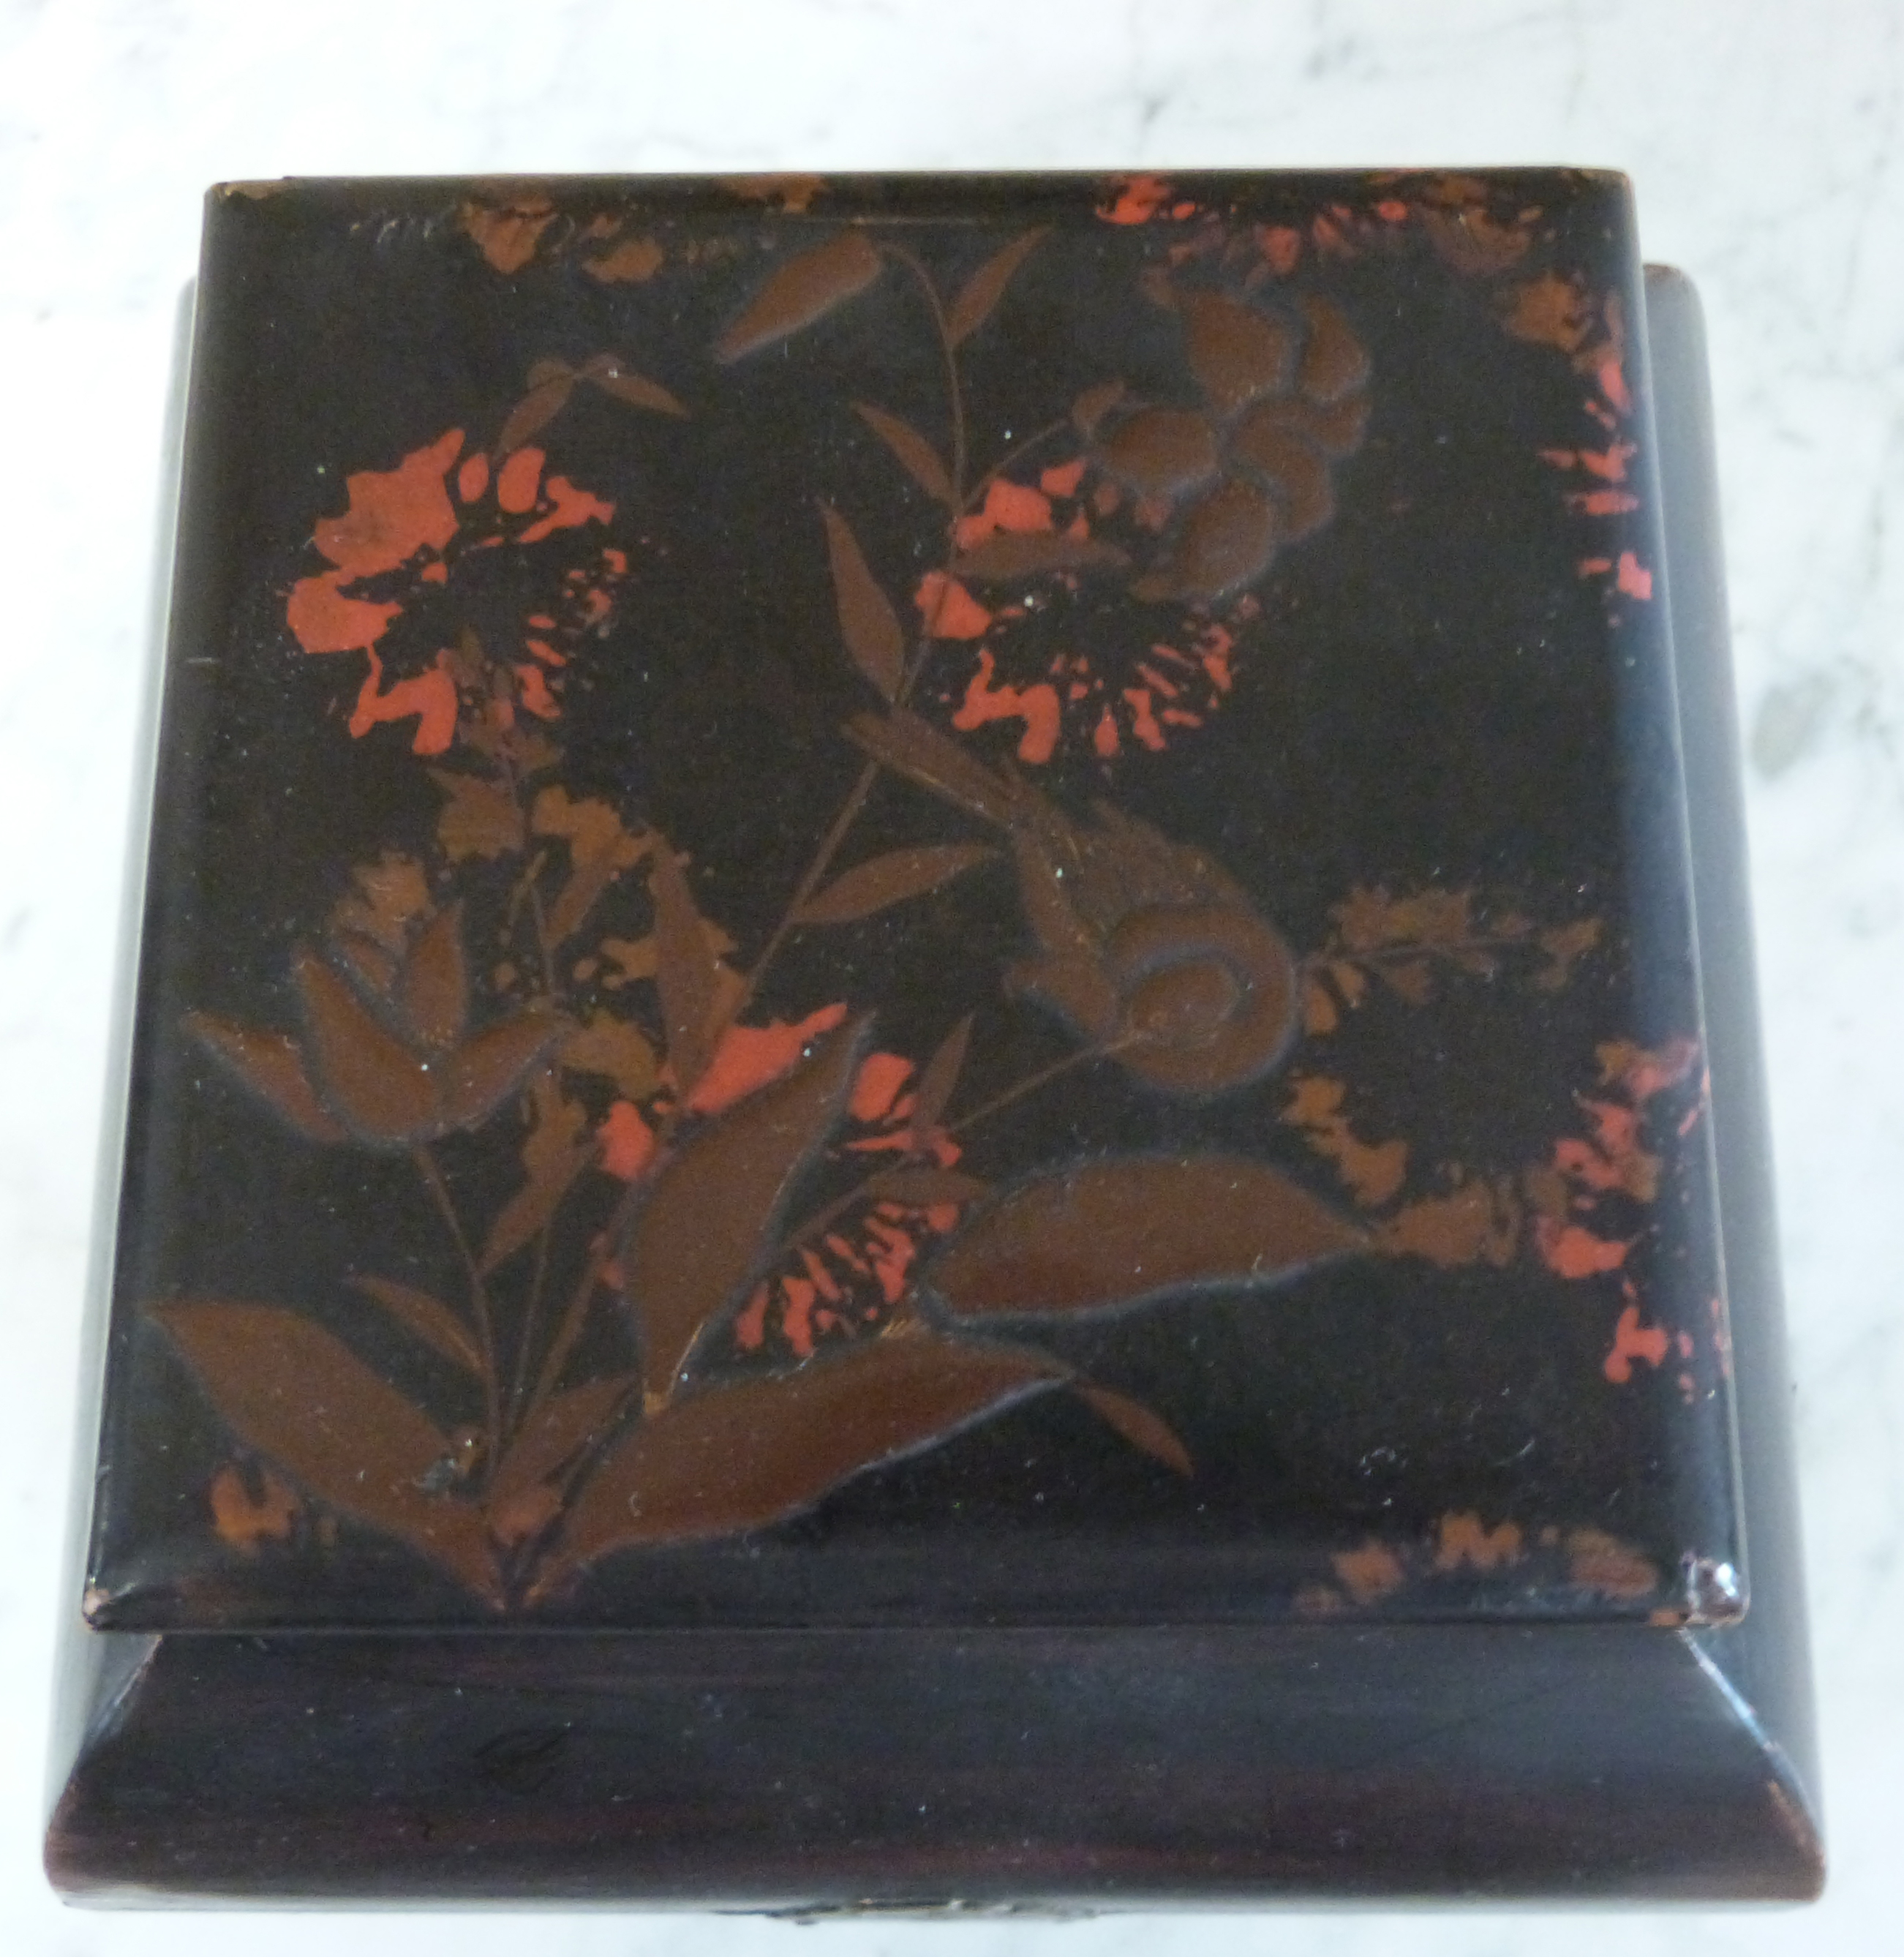 Japanese porcelain tea caddy with a lacquer decoration to the top of flowers, 20cm high - Image 3 of 5